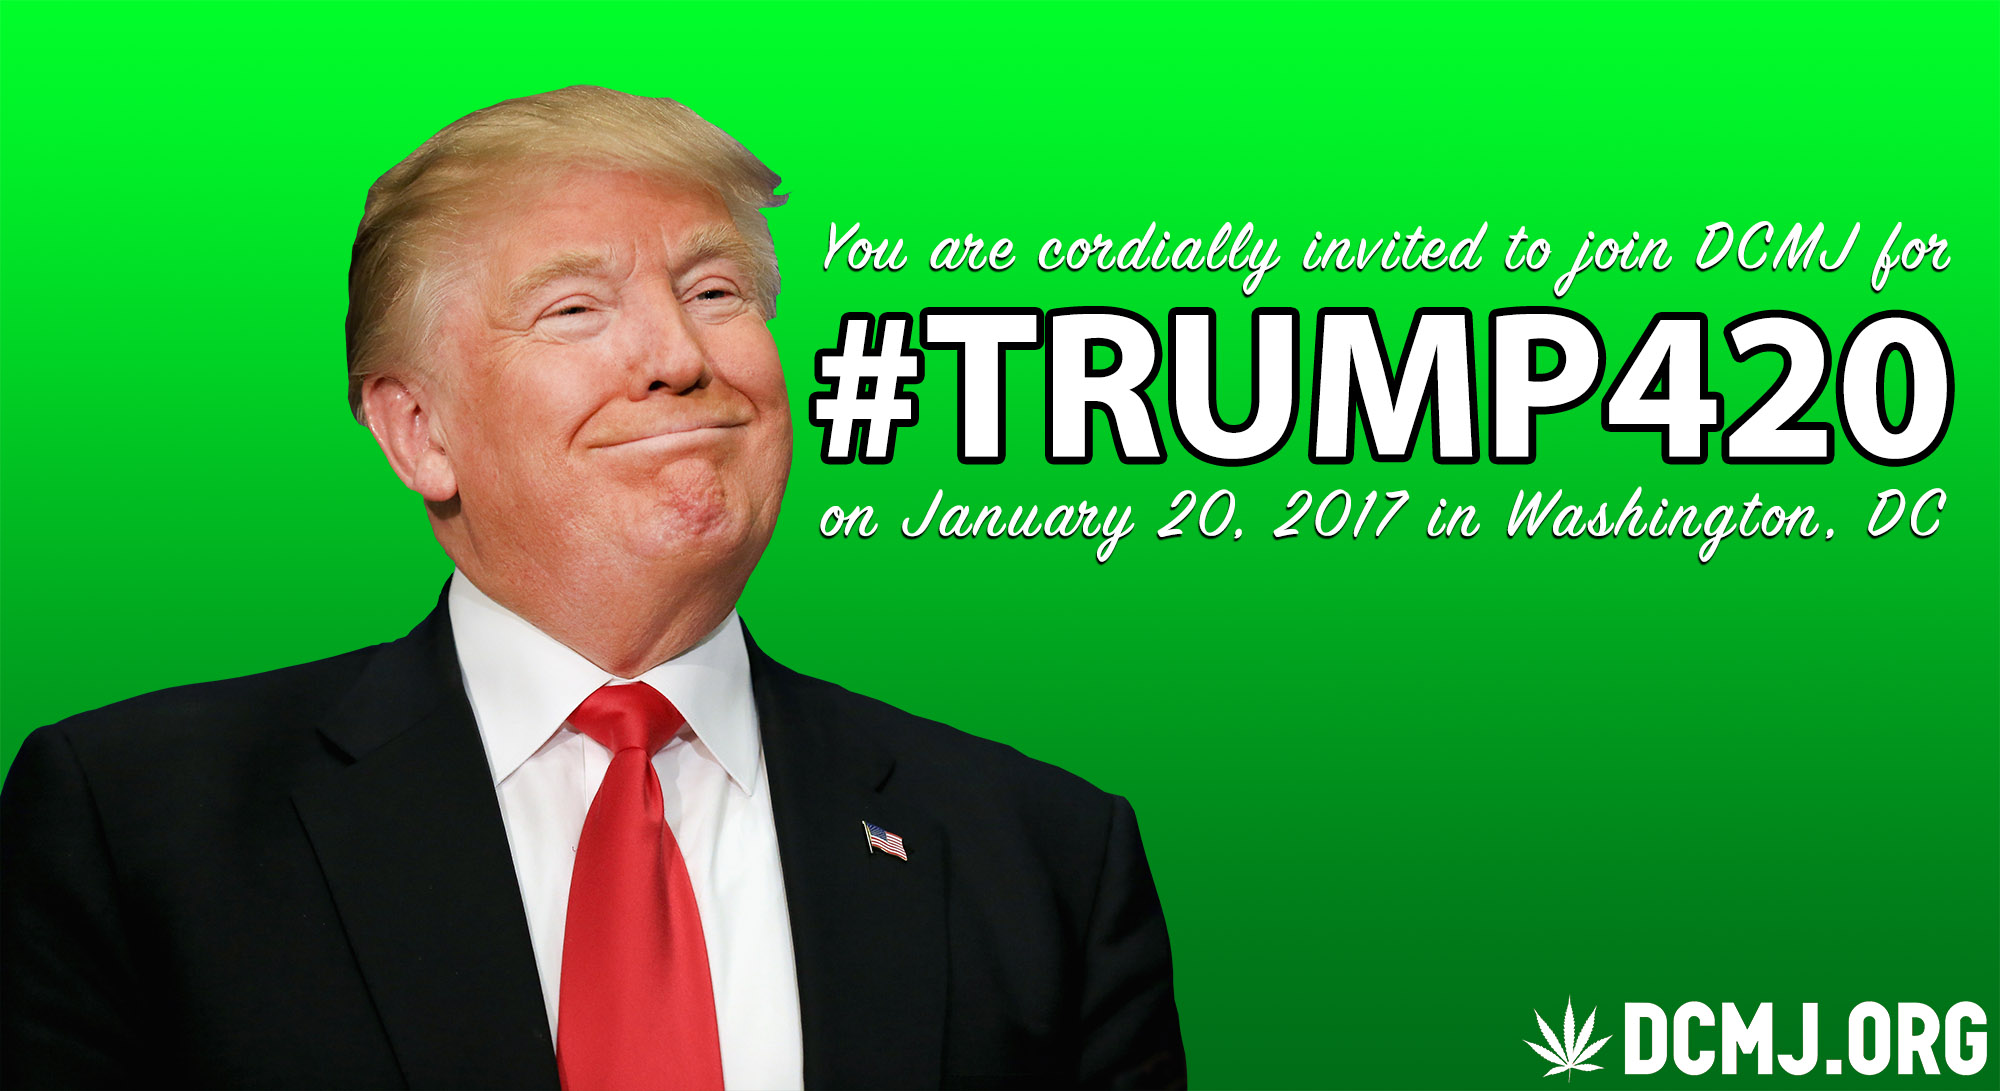 Join us for Trump420 on January 20, 2017!